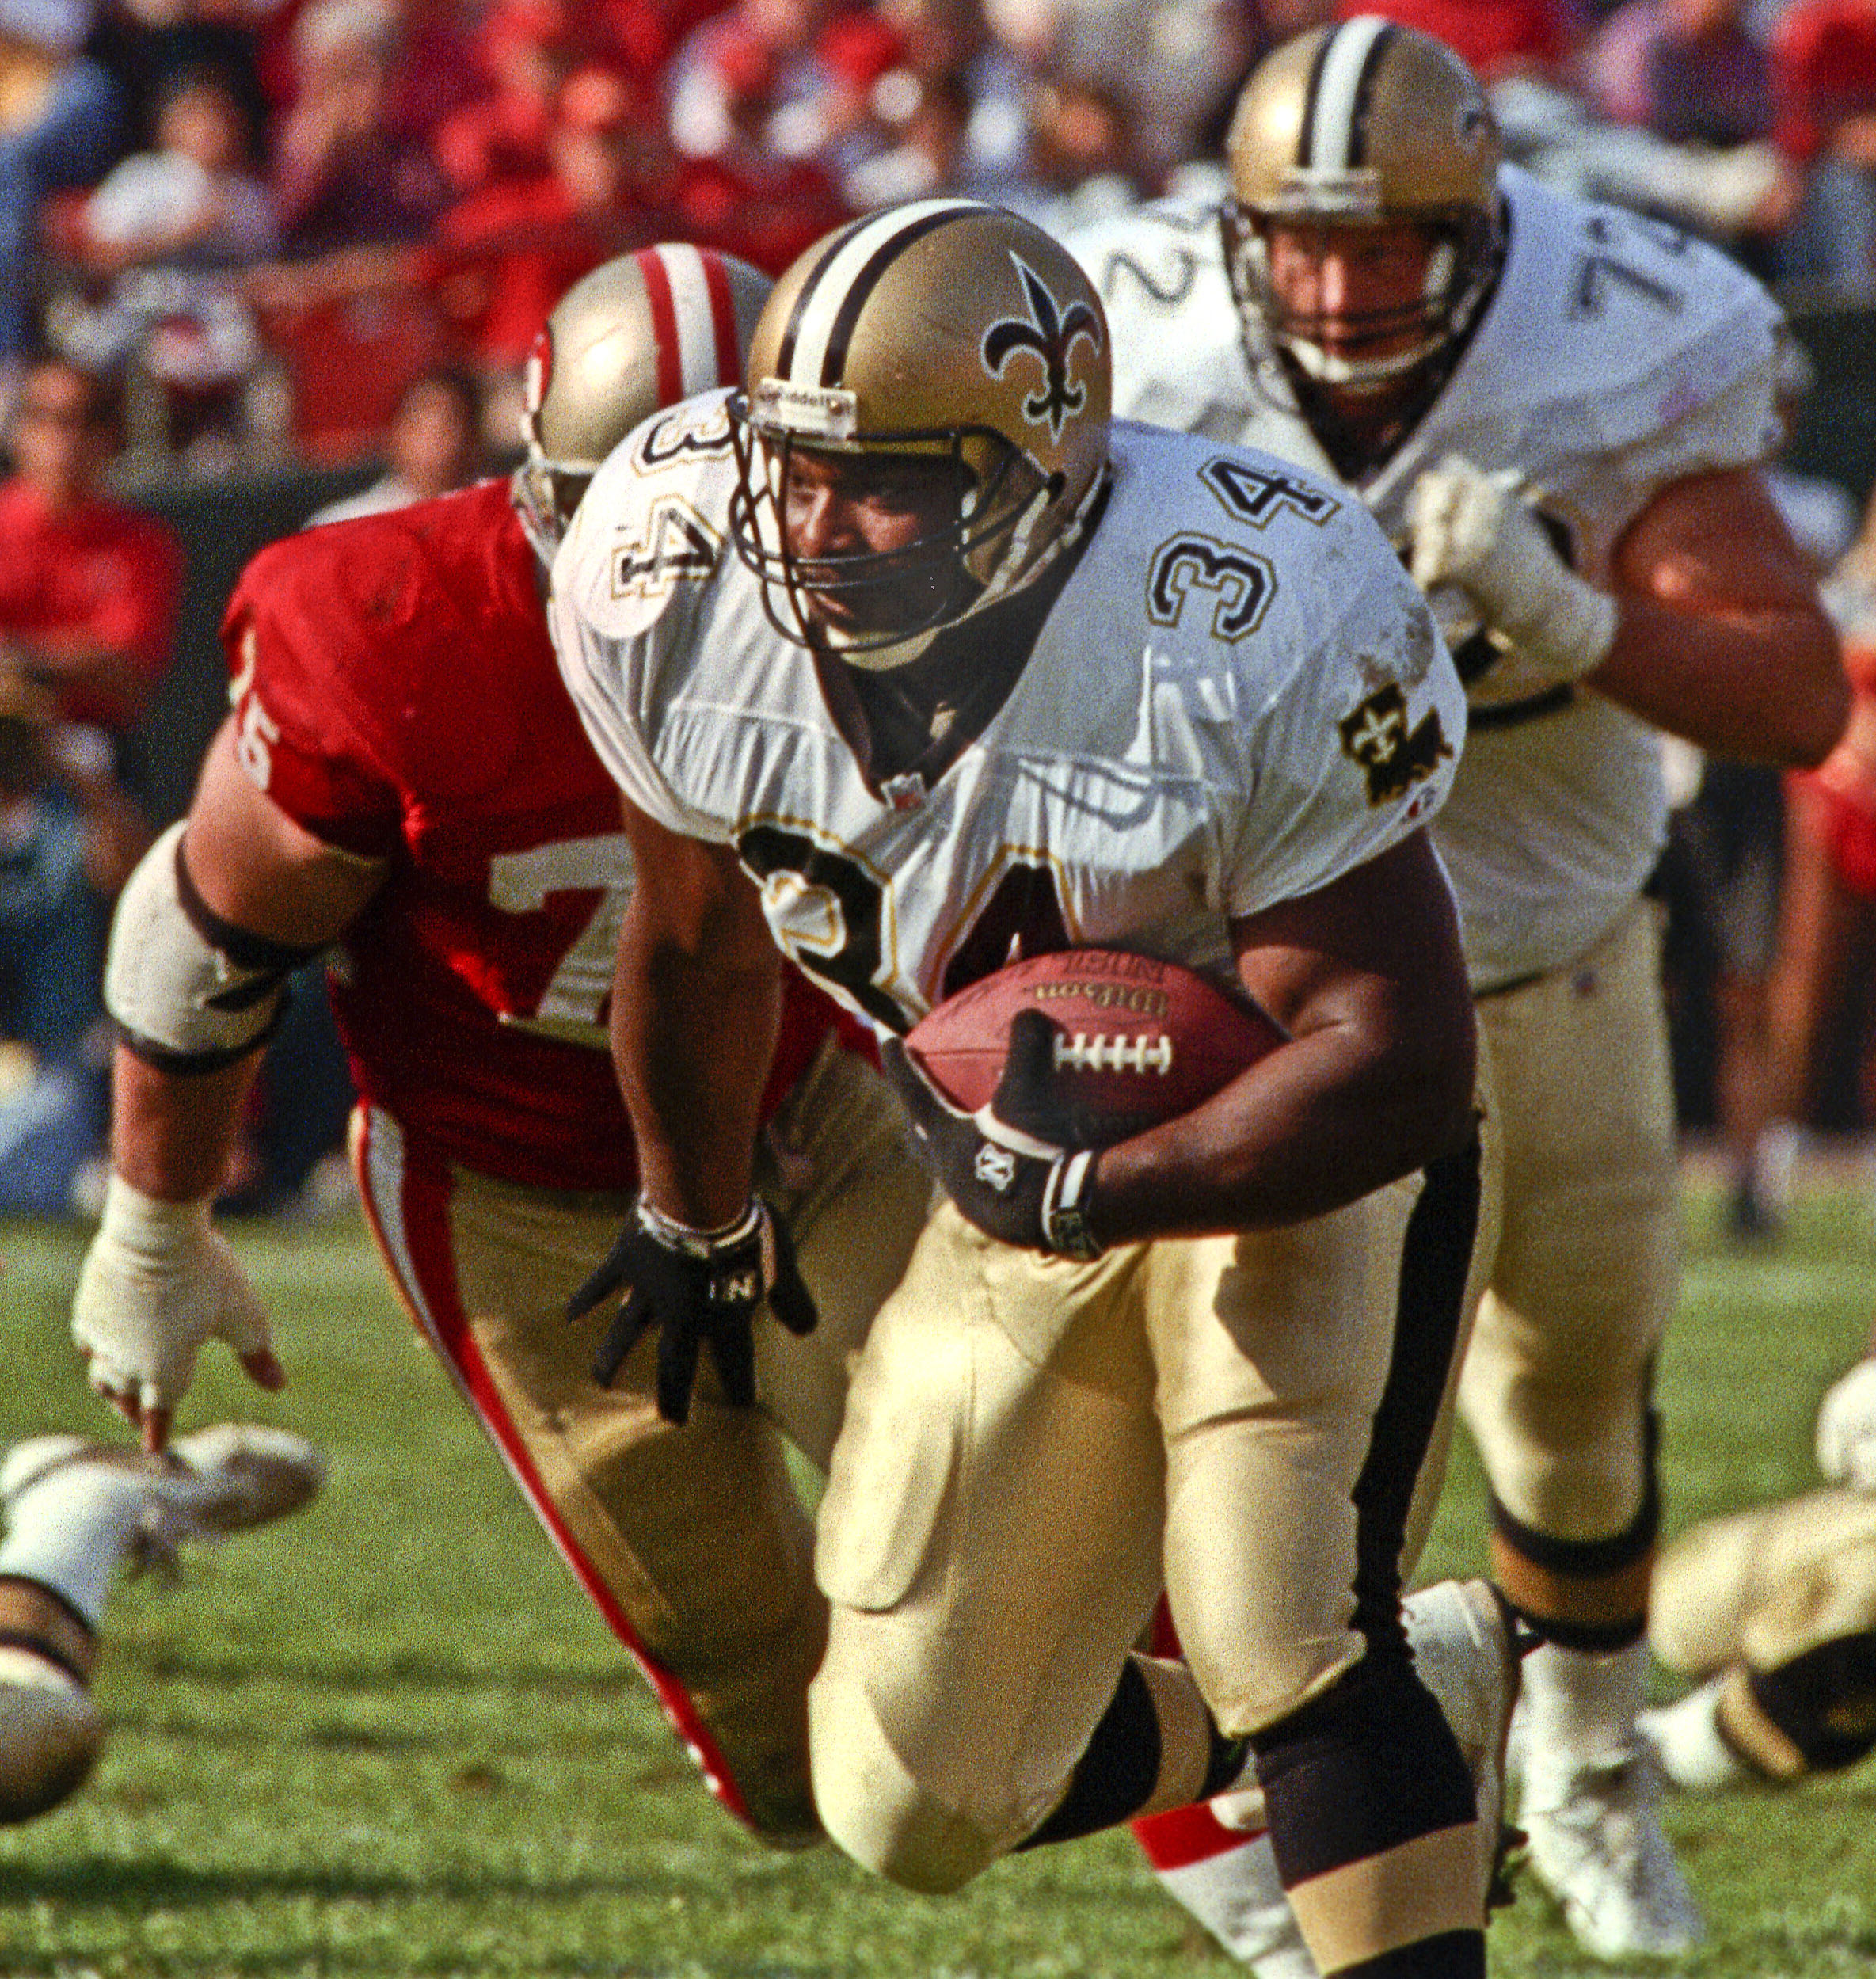 Former RB Craig Heyward of the New Orleans Saints.